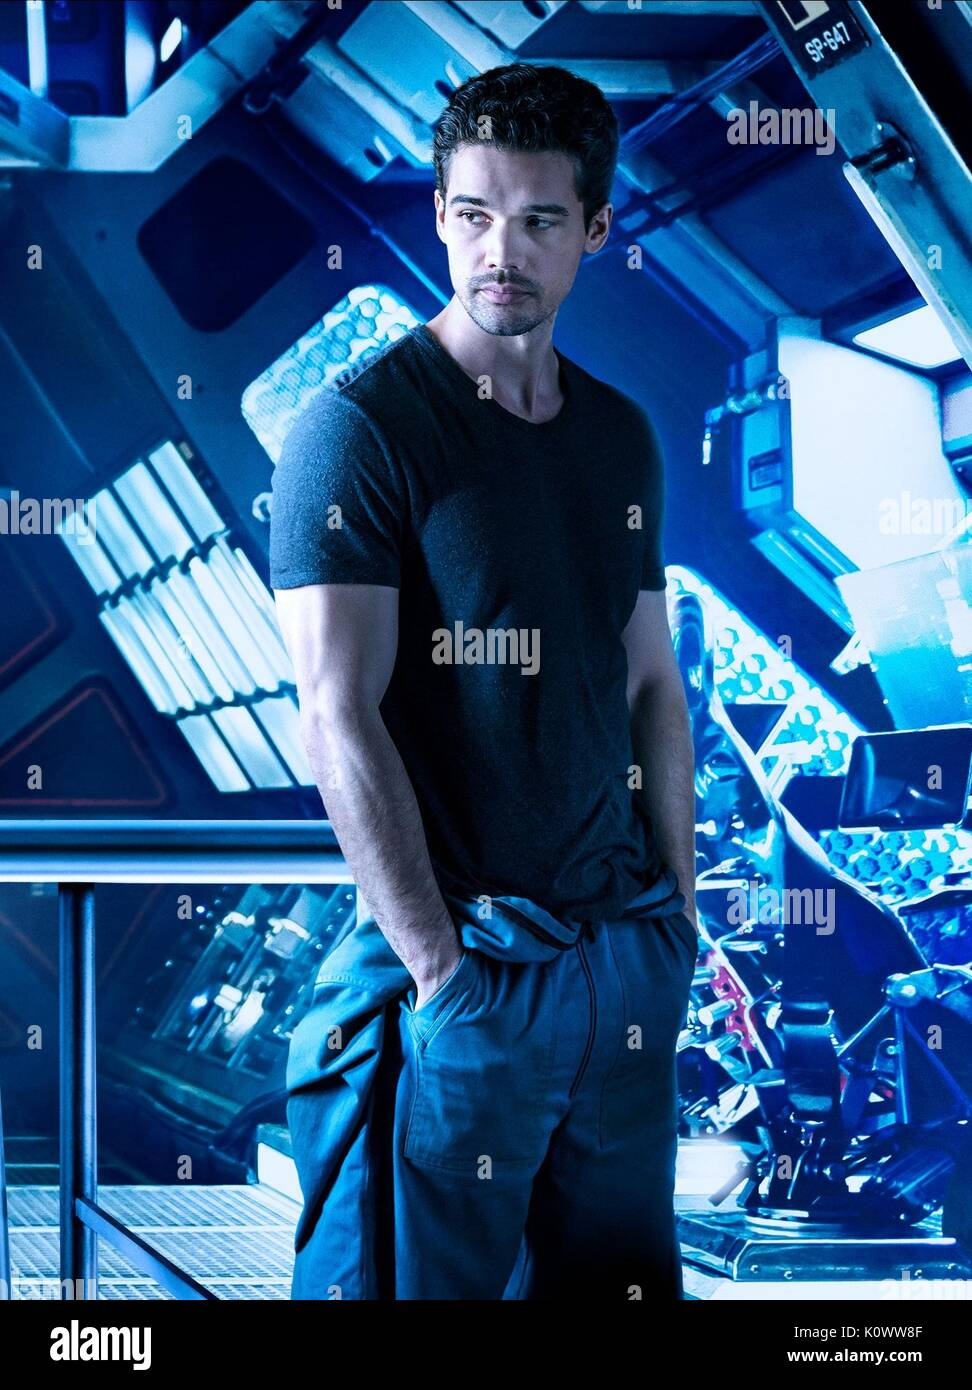 STEVEN STRAIT THE EXPANSE (2015) - Stock Image